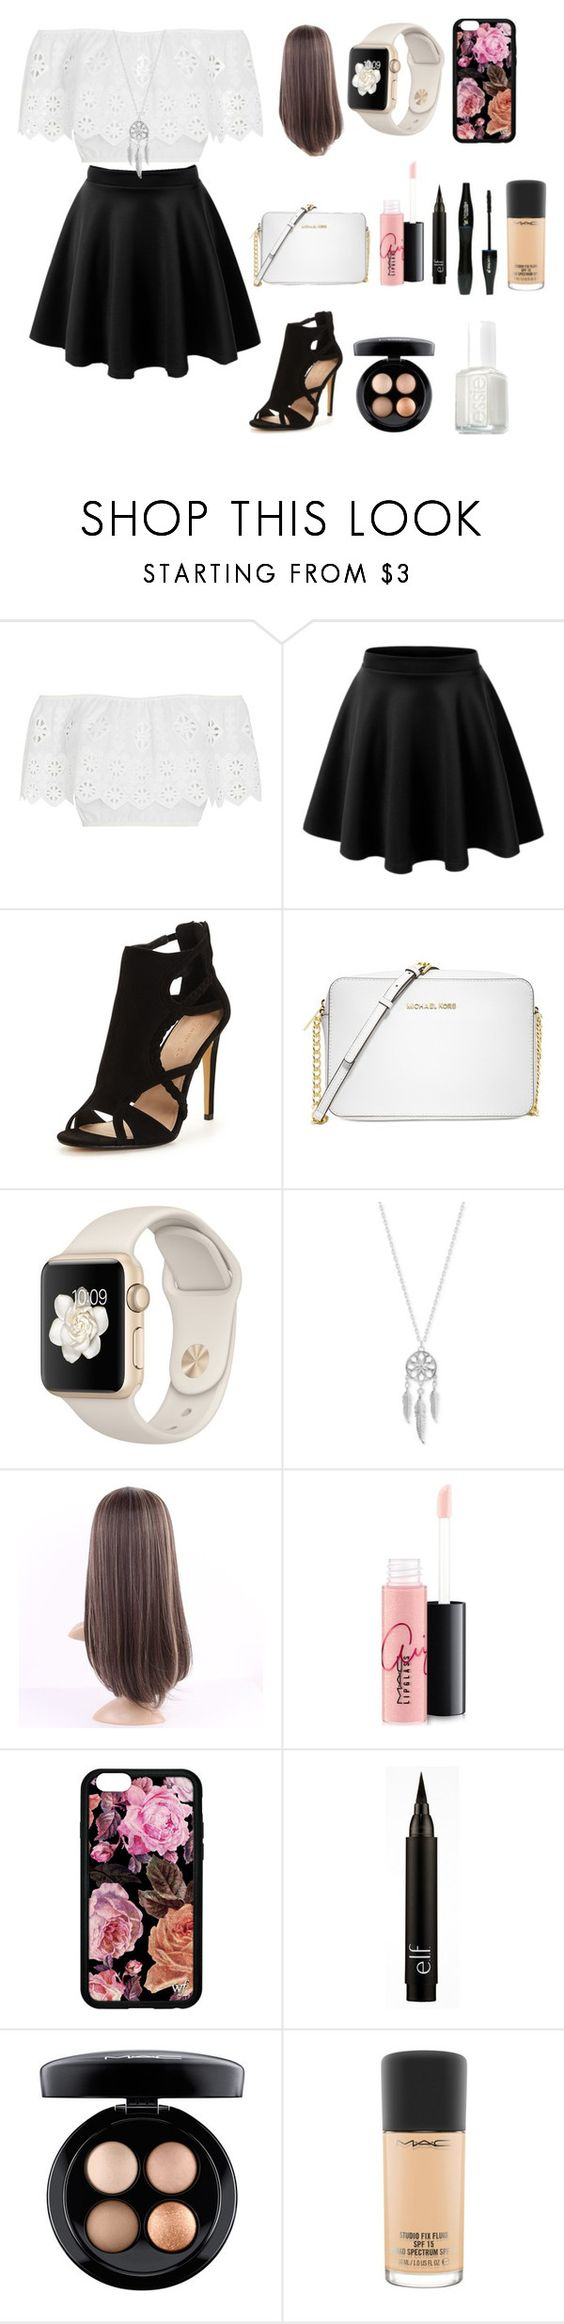 """""""Made by Serina"""" by gamingwithana on Polyvore featuring Miguelina, Michael Kors, Lucky Brand, MAC Cosmetics, Lancôme and Essie"""